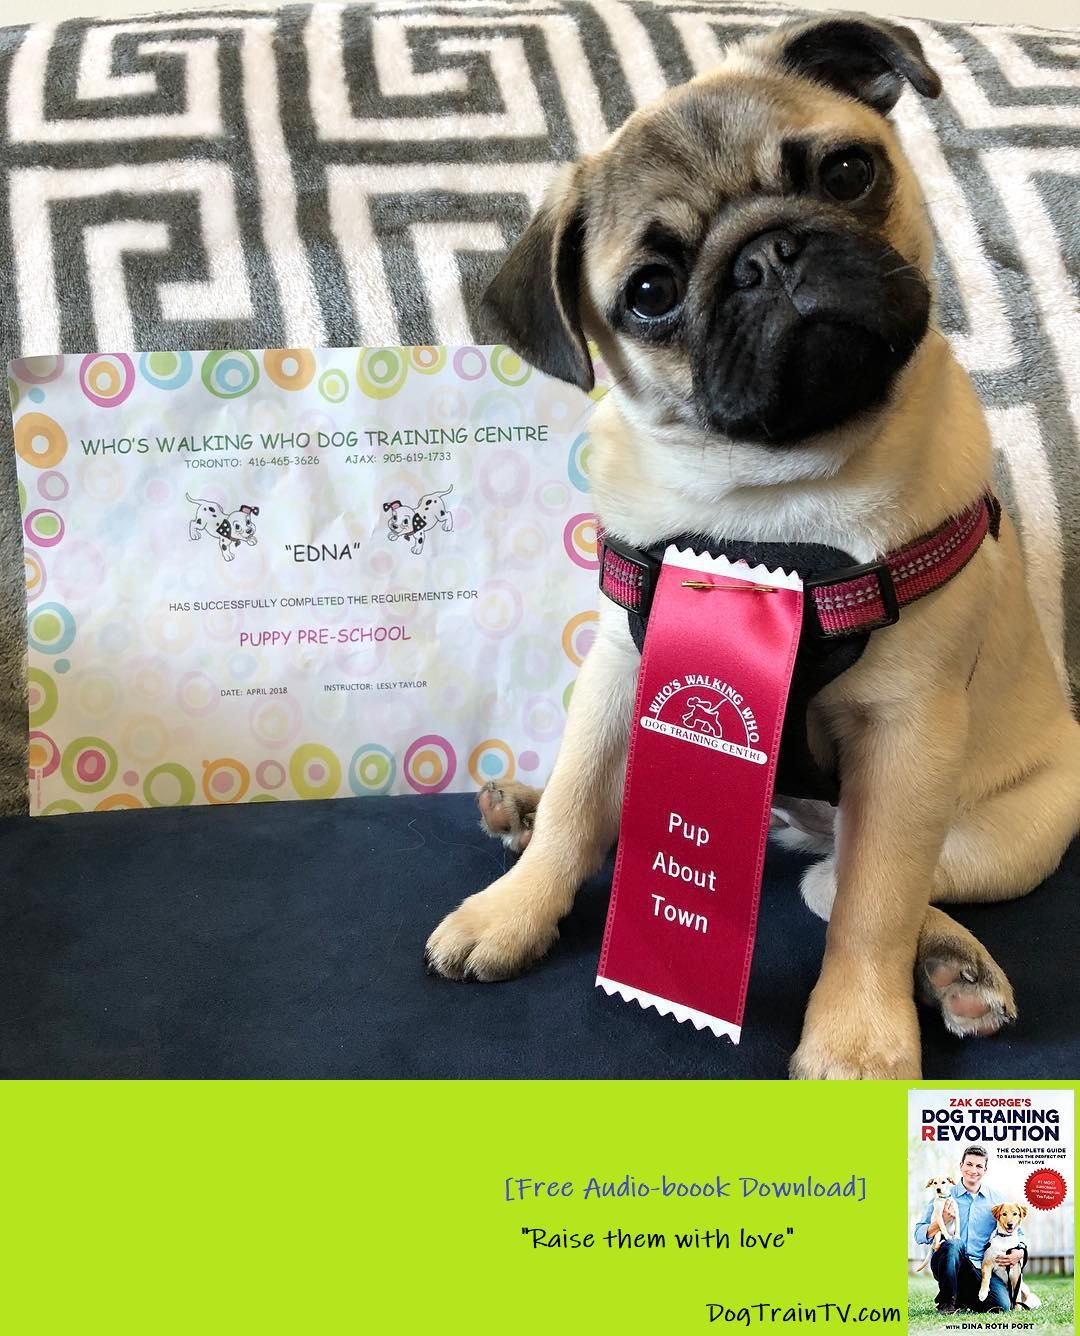 When I Was Awarded A Ribbon And Certificate For Passing Puppy Pre